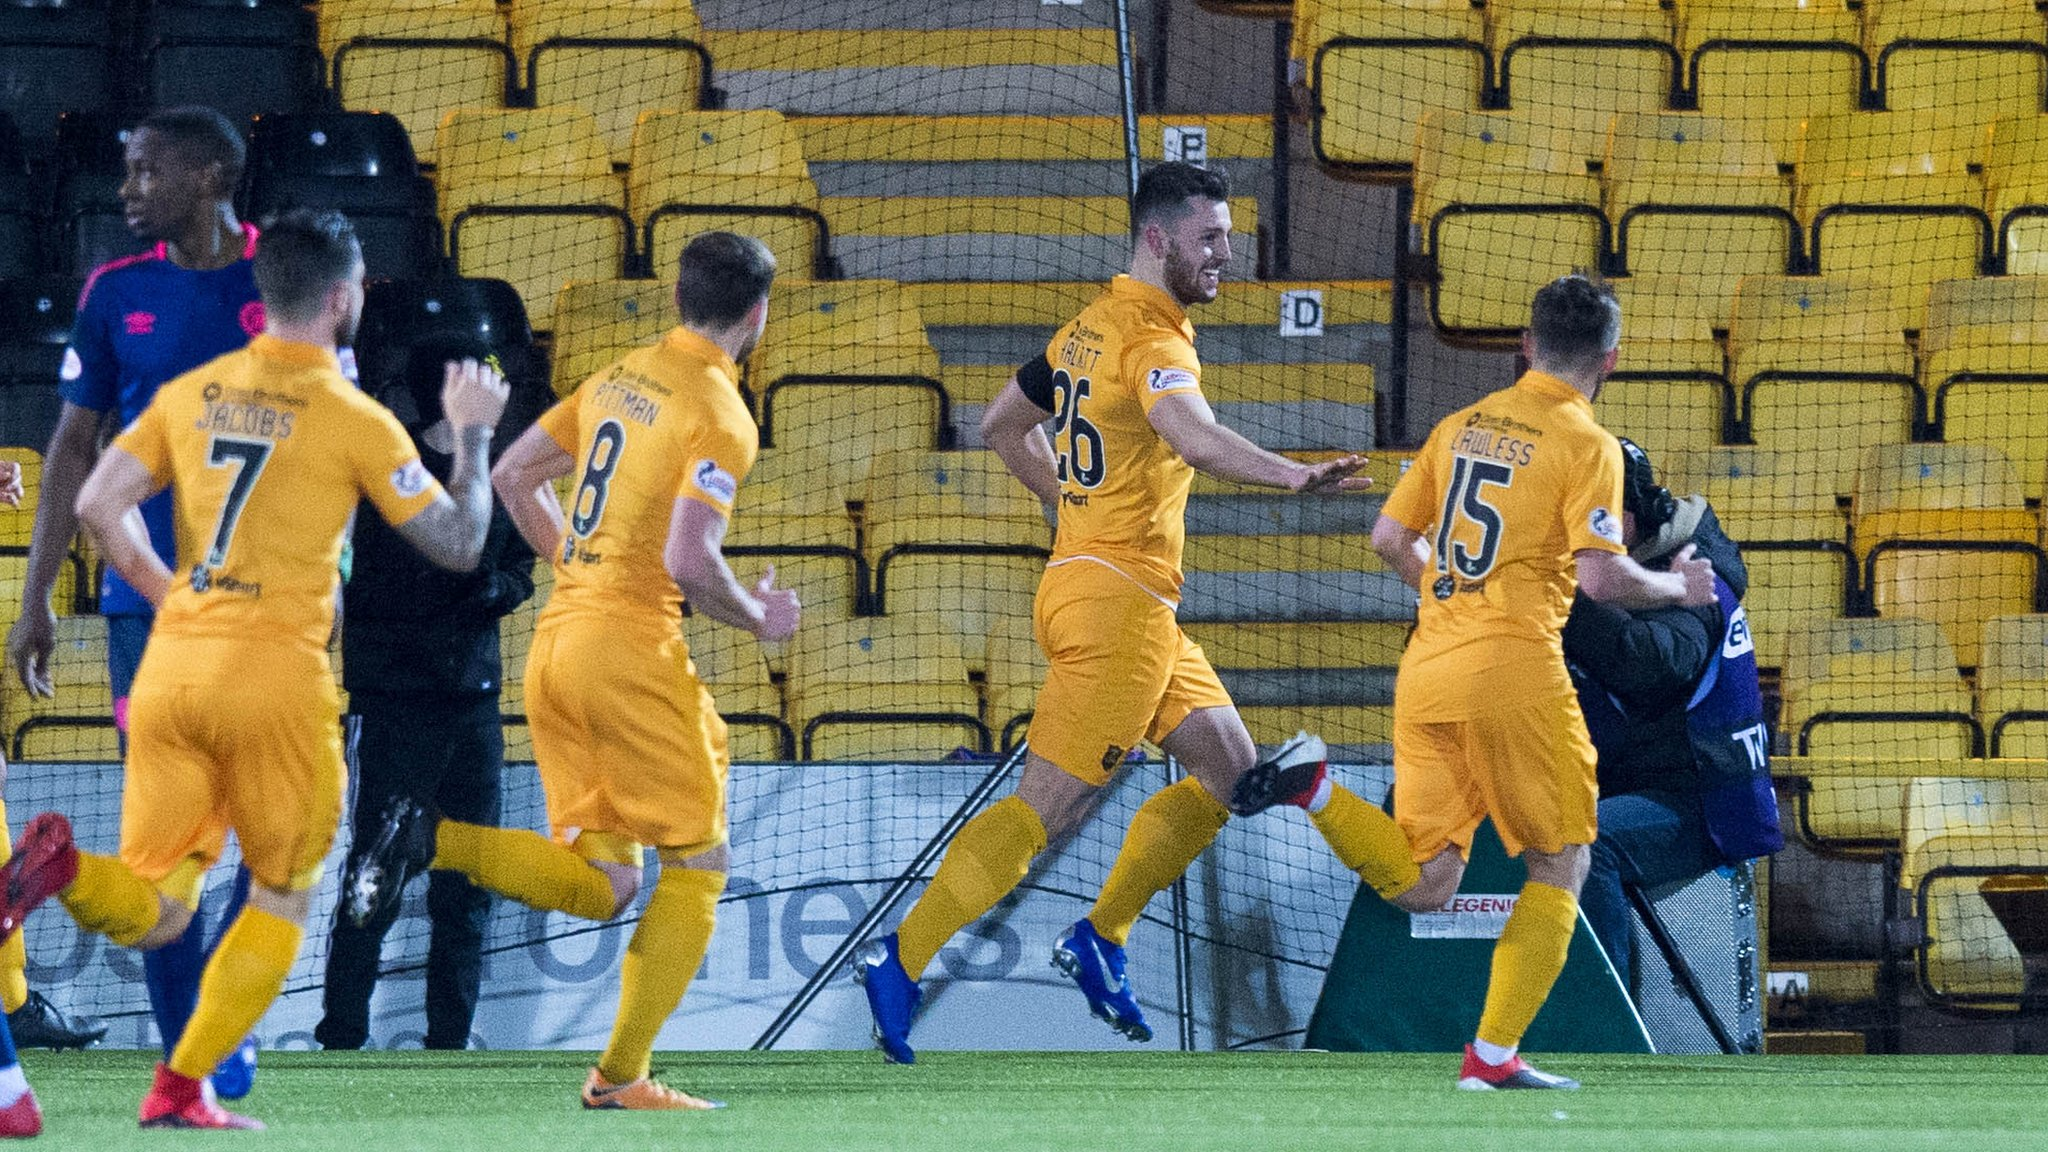 Five goals and a red card in 14 minutes as Livingston hammer Hearts